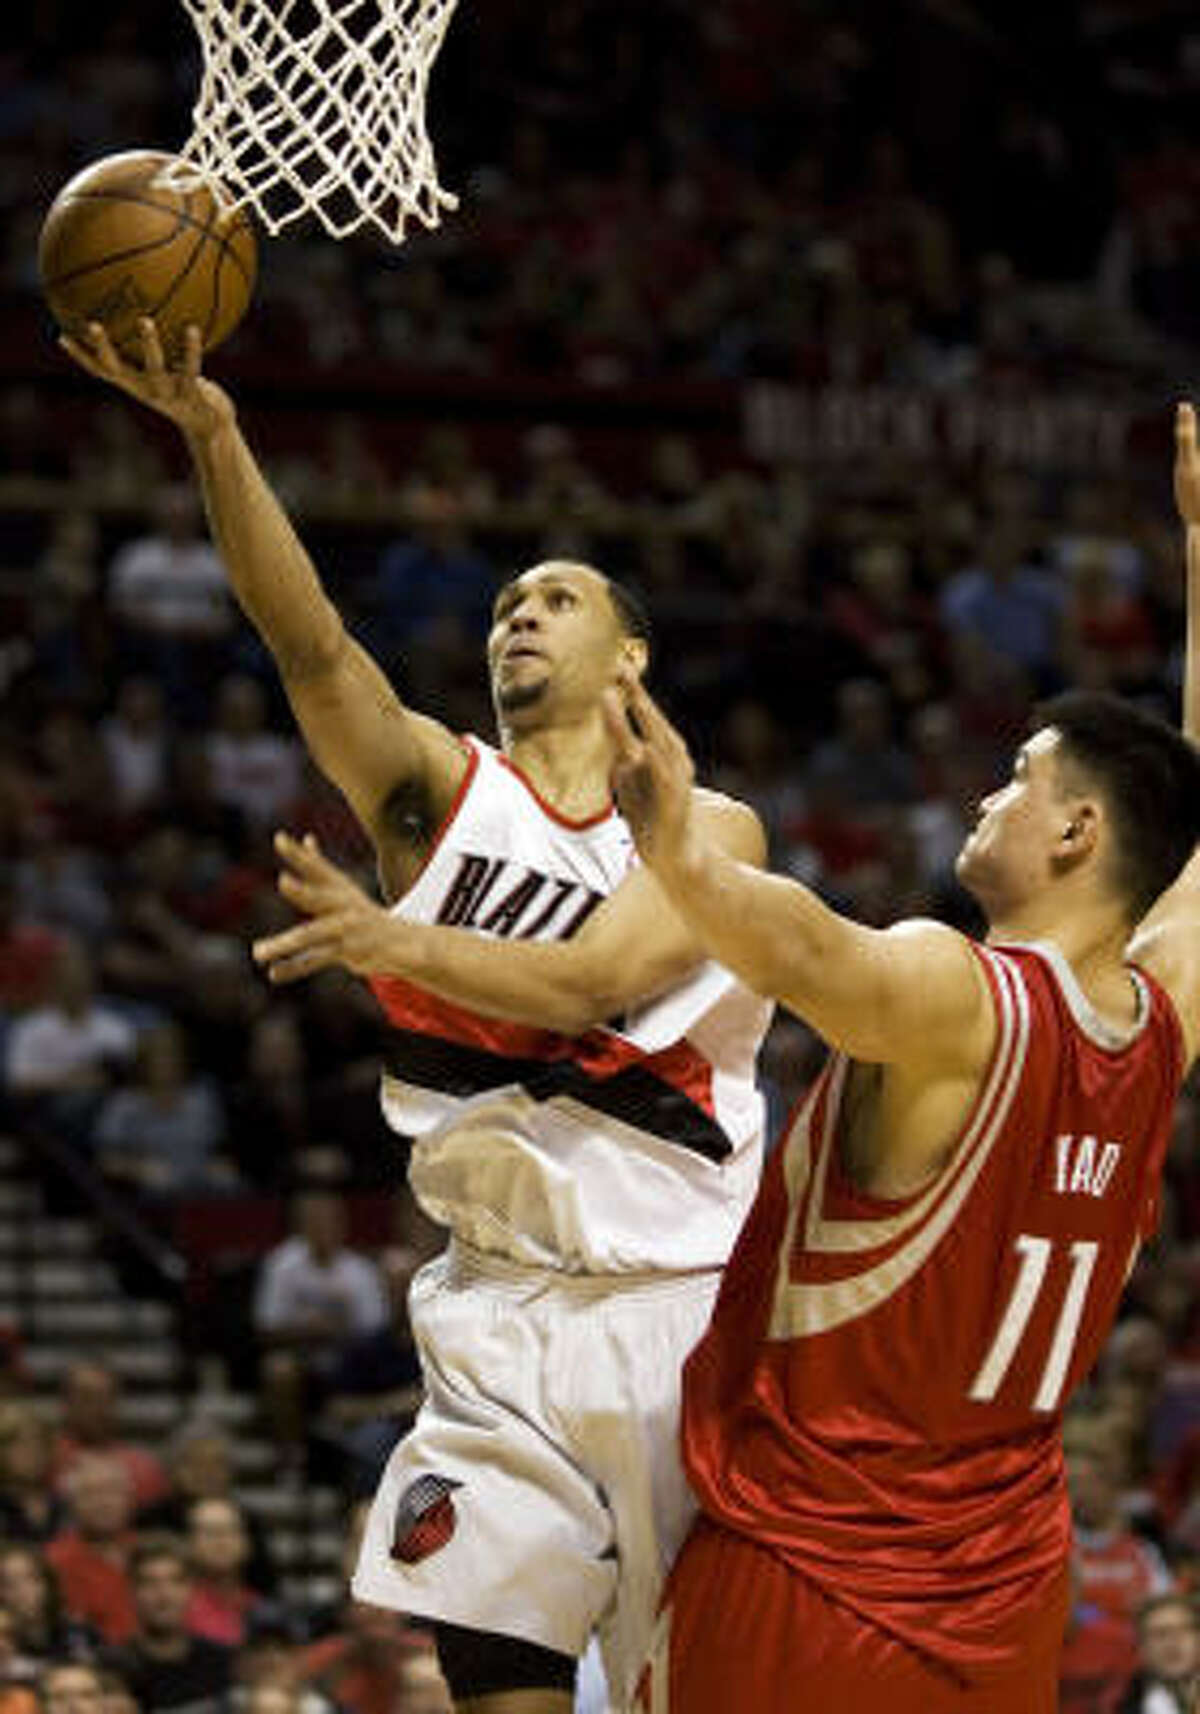 Trail Blazers guard Brandon Roy, left, goes to the hoop as Yao Ming defends during the first half.